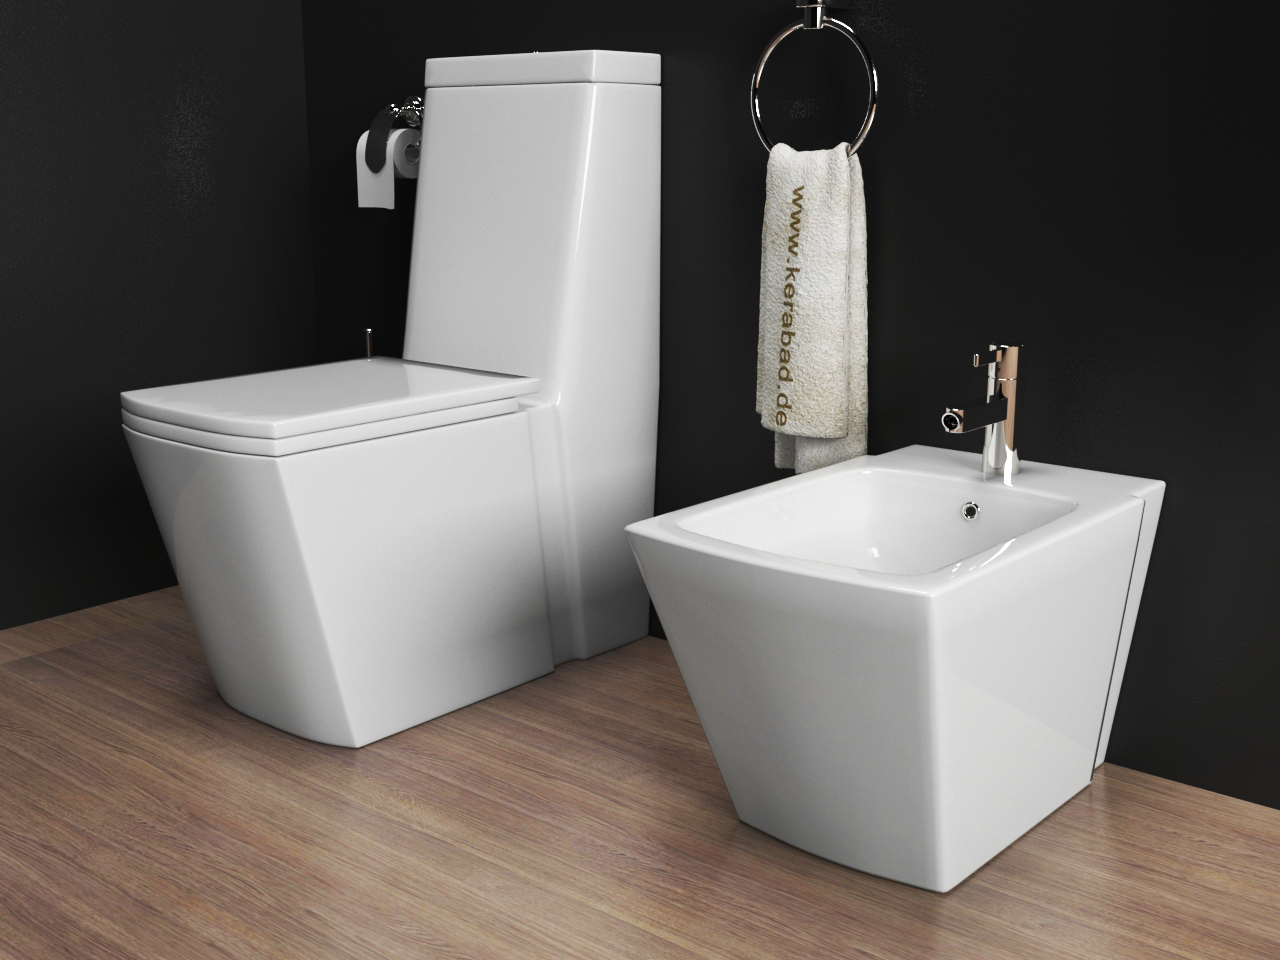 wc und bidet kombination best 28 images sanikal bad. Black Bedroom Furniture Sets. Home Design Ideas